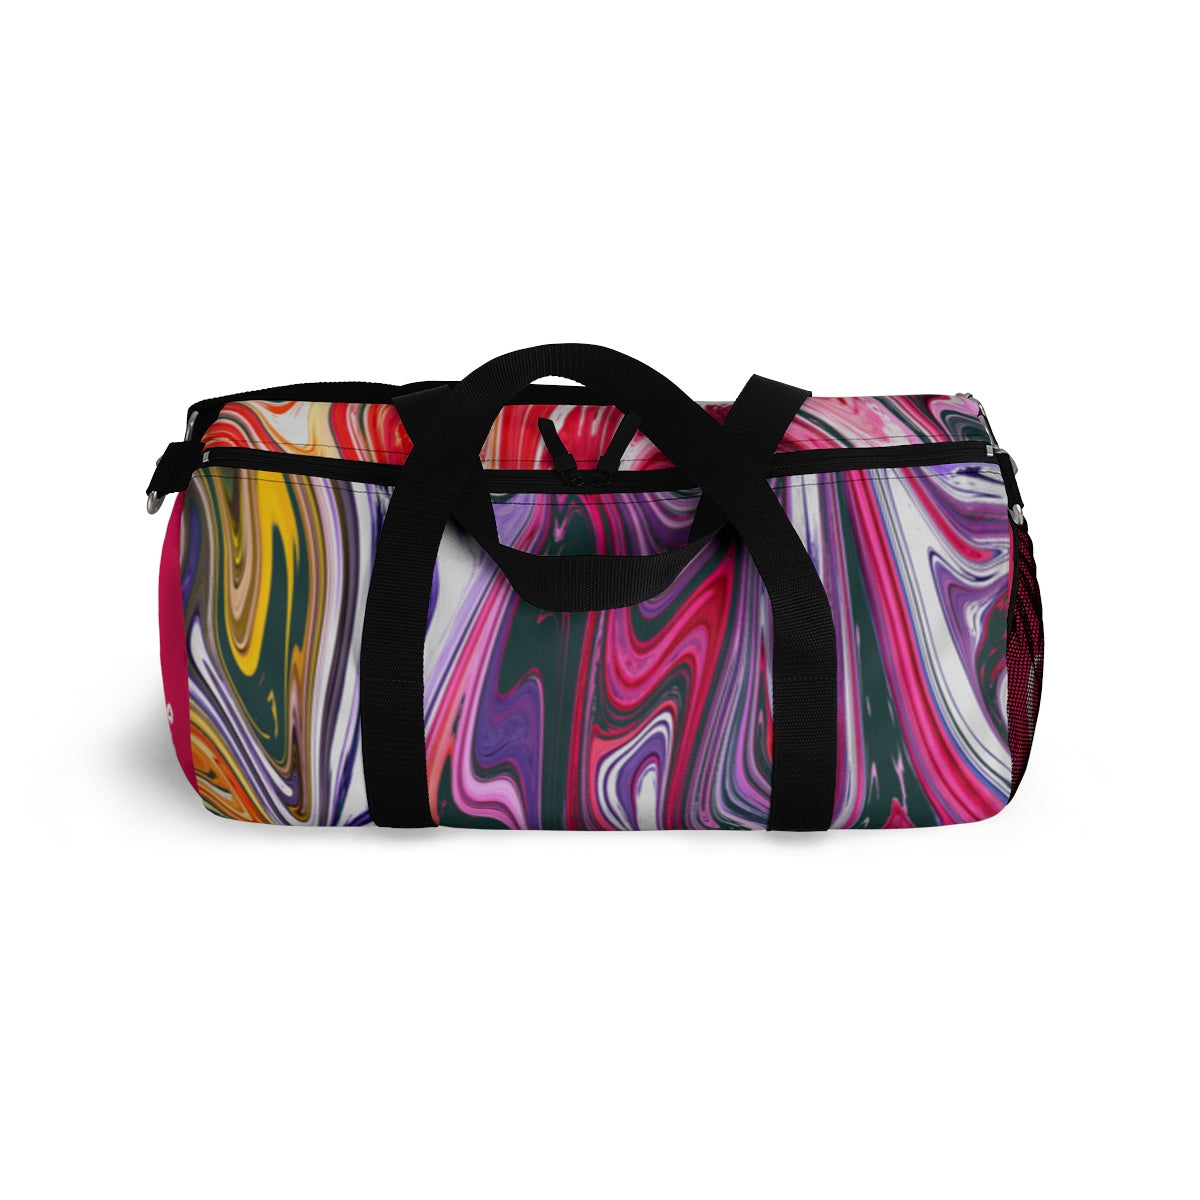 Artistry Good Vibes Duffel Bag, Red, Purple, White, Green - skyrockettees